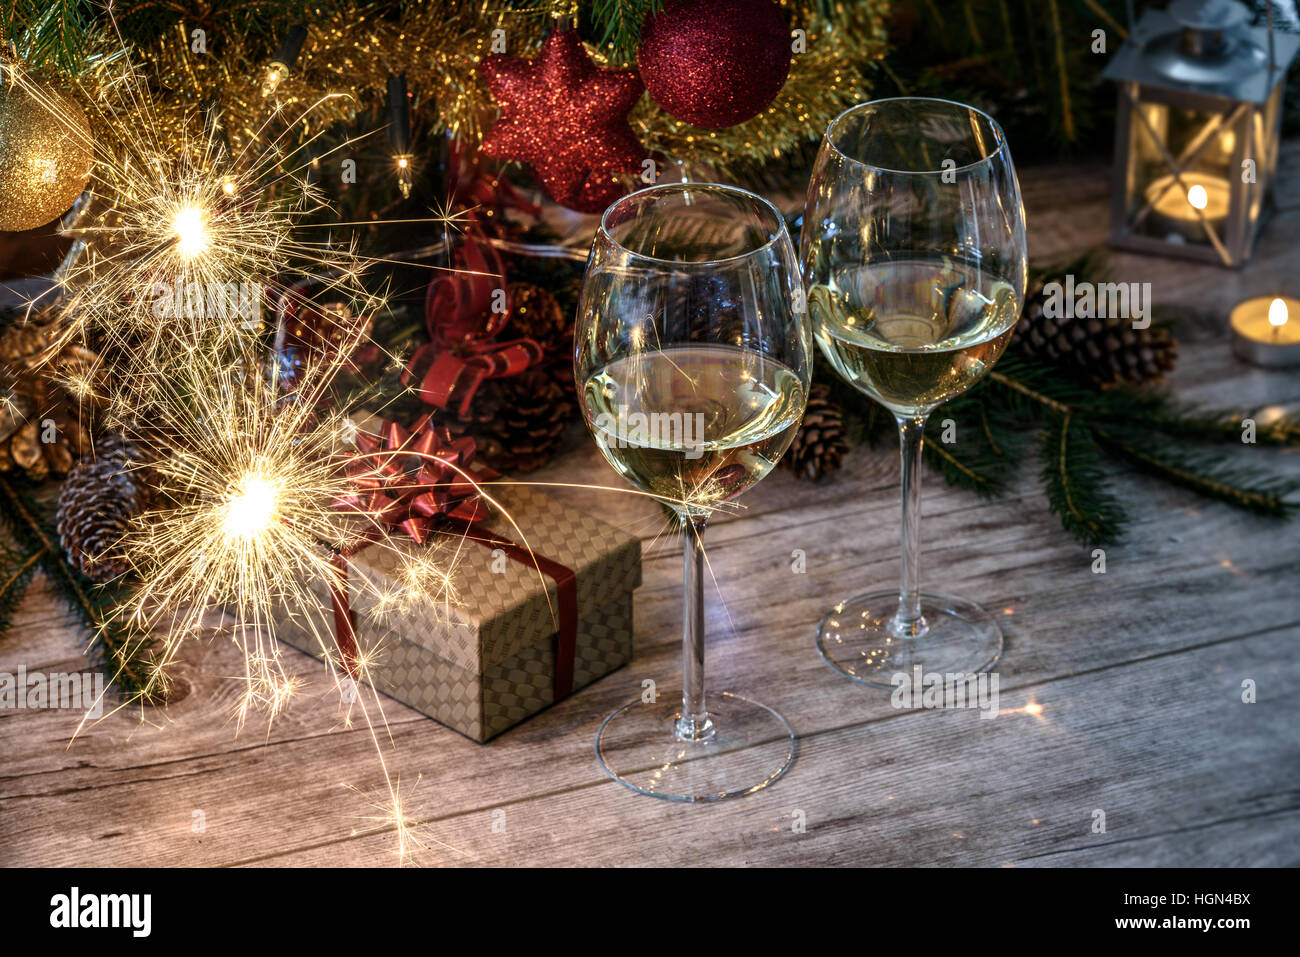 Sparklers at two wineglas with white wine on a wooden table in the background of Christmas tree, gift and candles - Stock Image